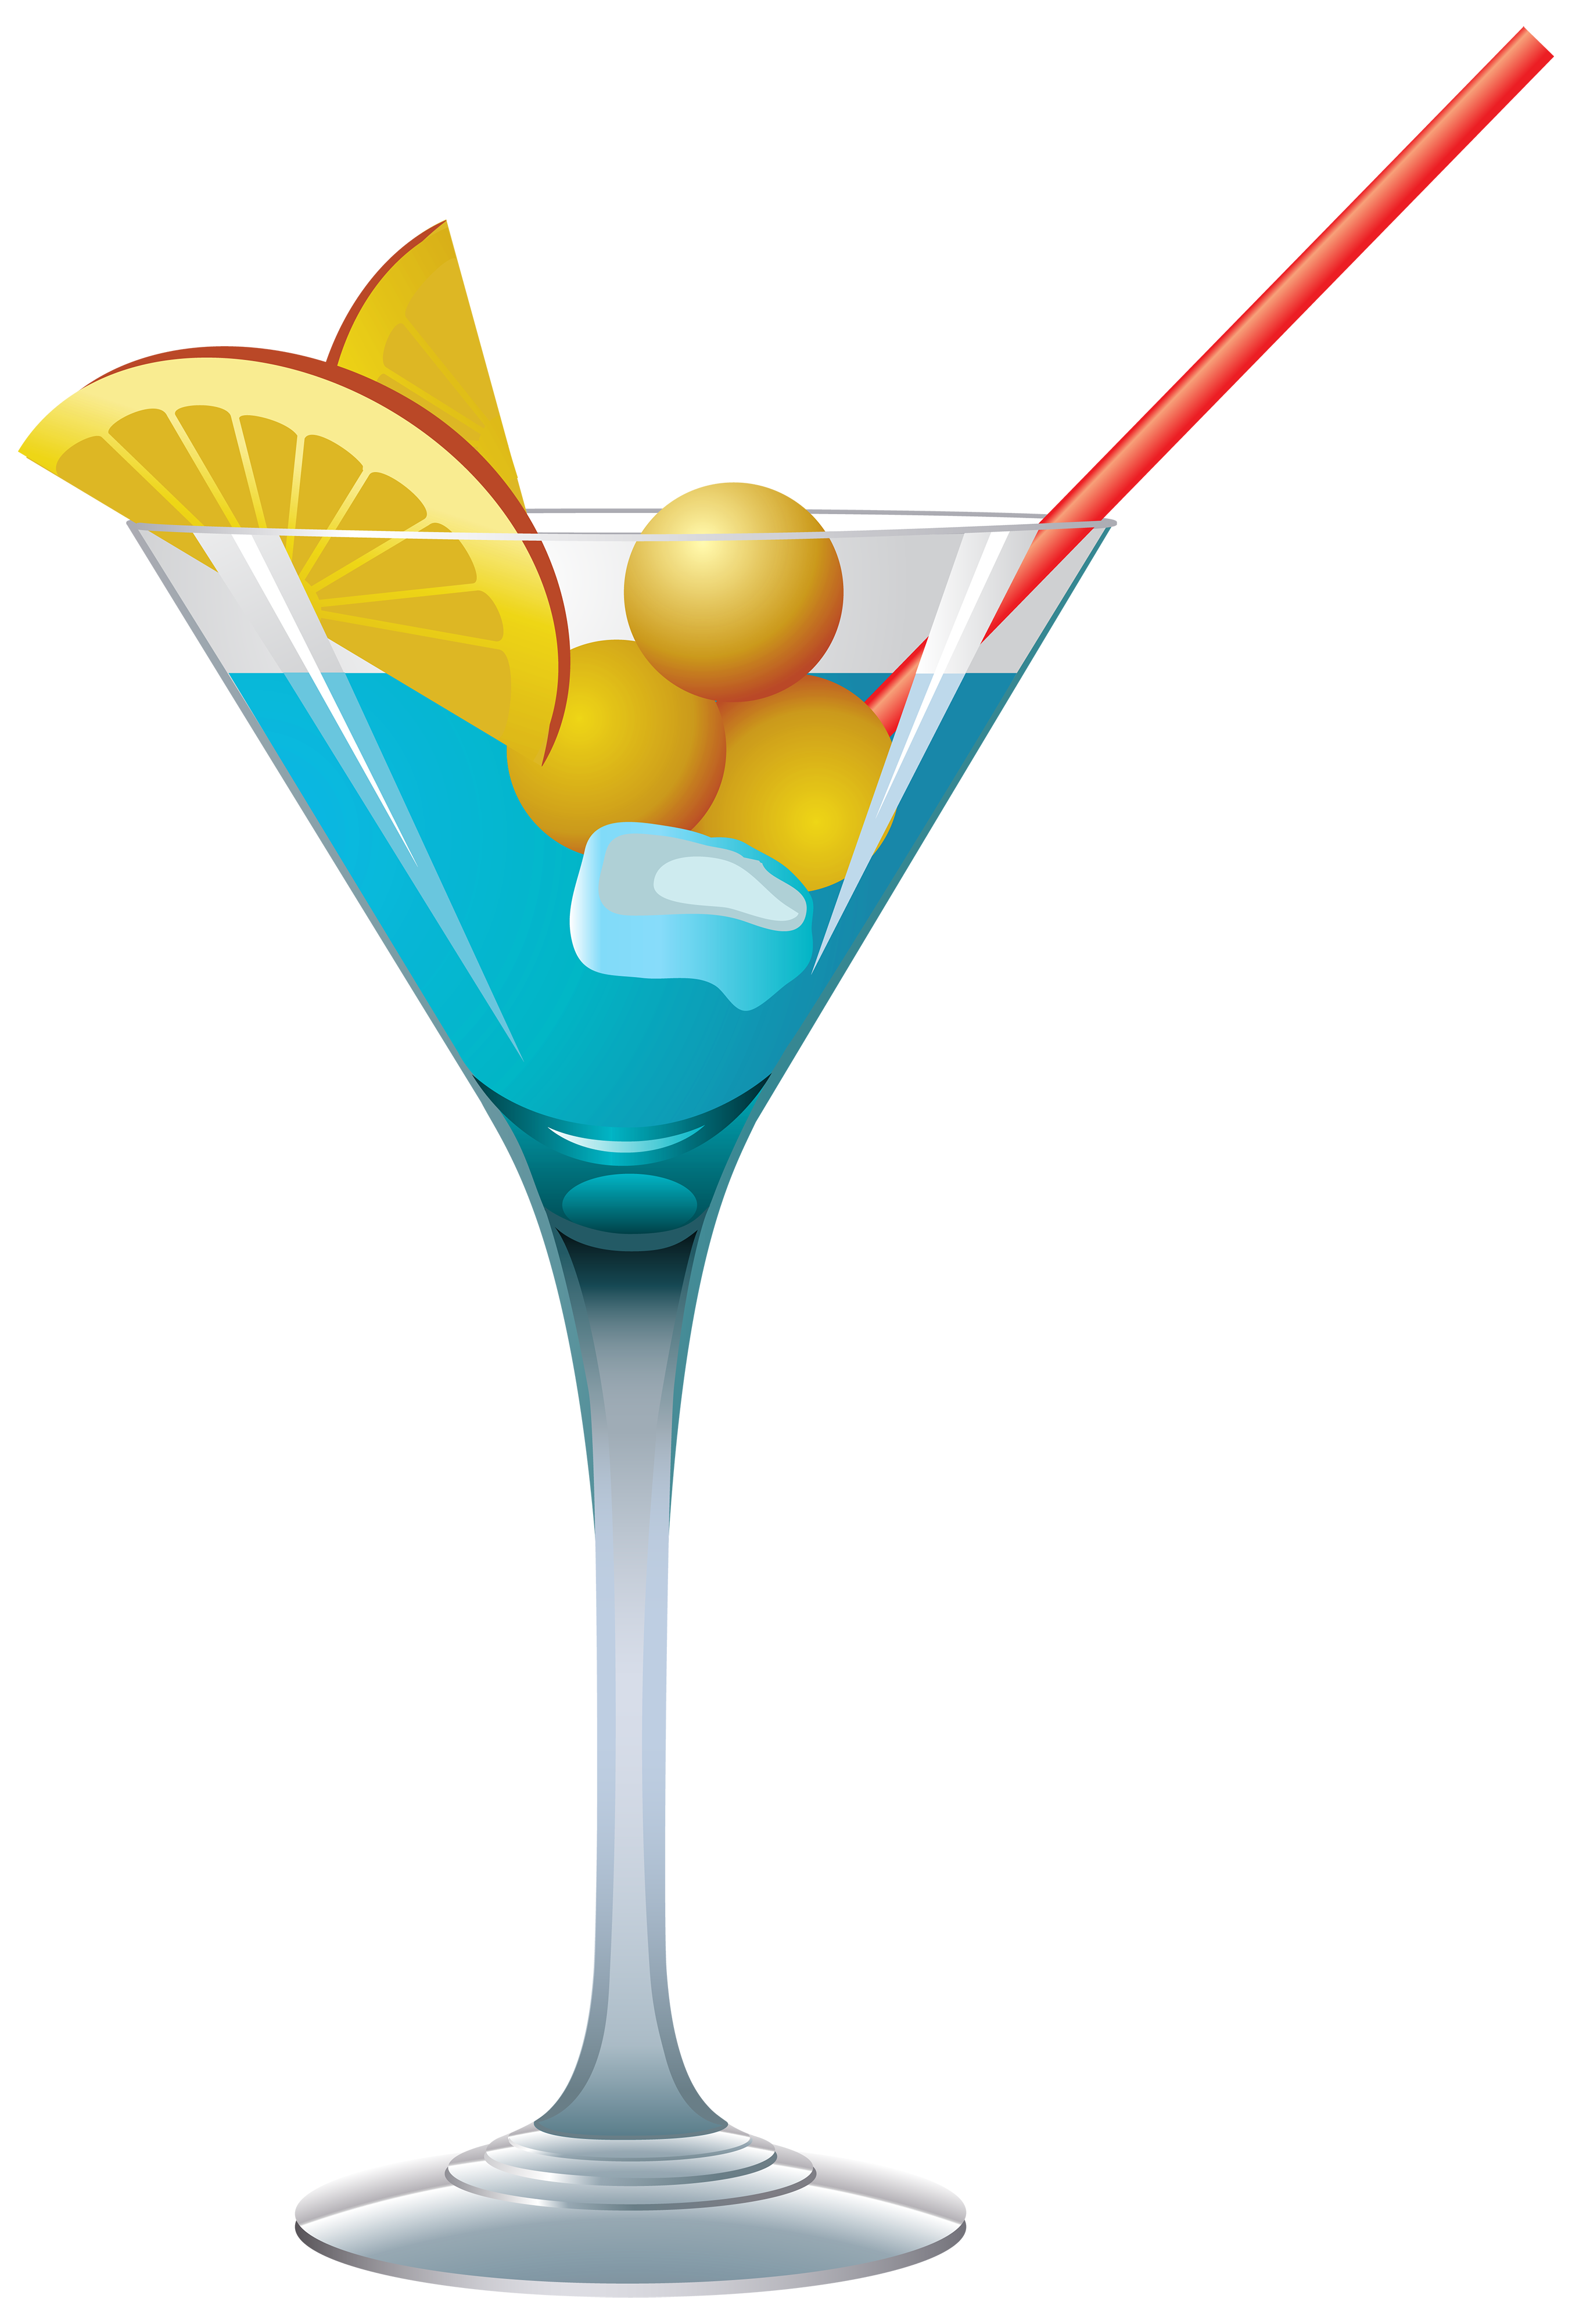 Pin By Charudeal On Clipart Pinterest Clip Art Cocktails And